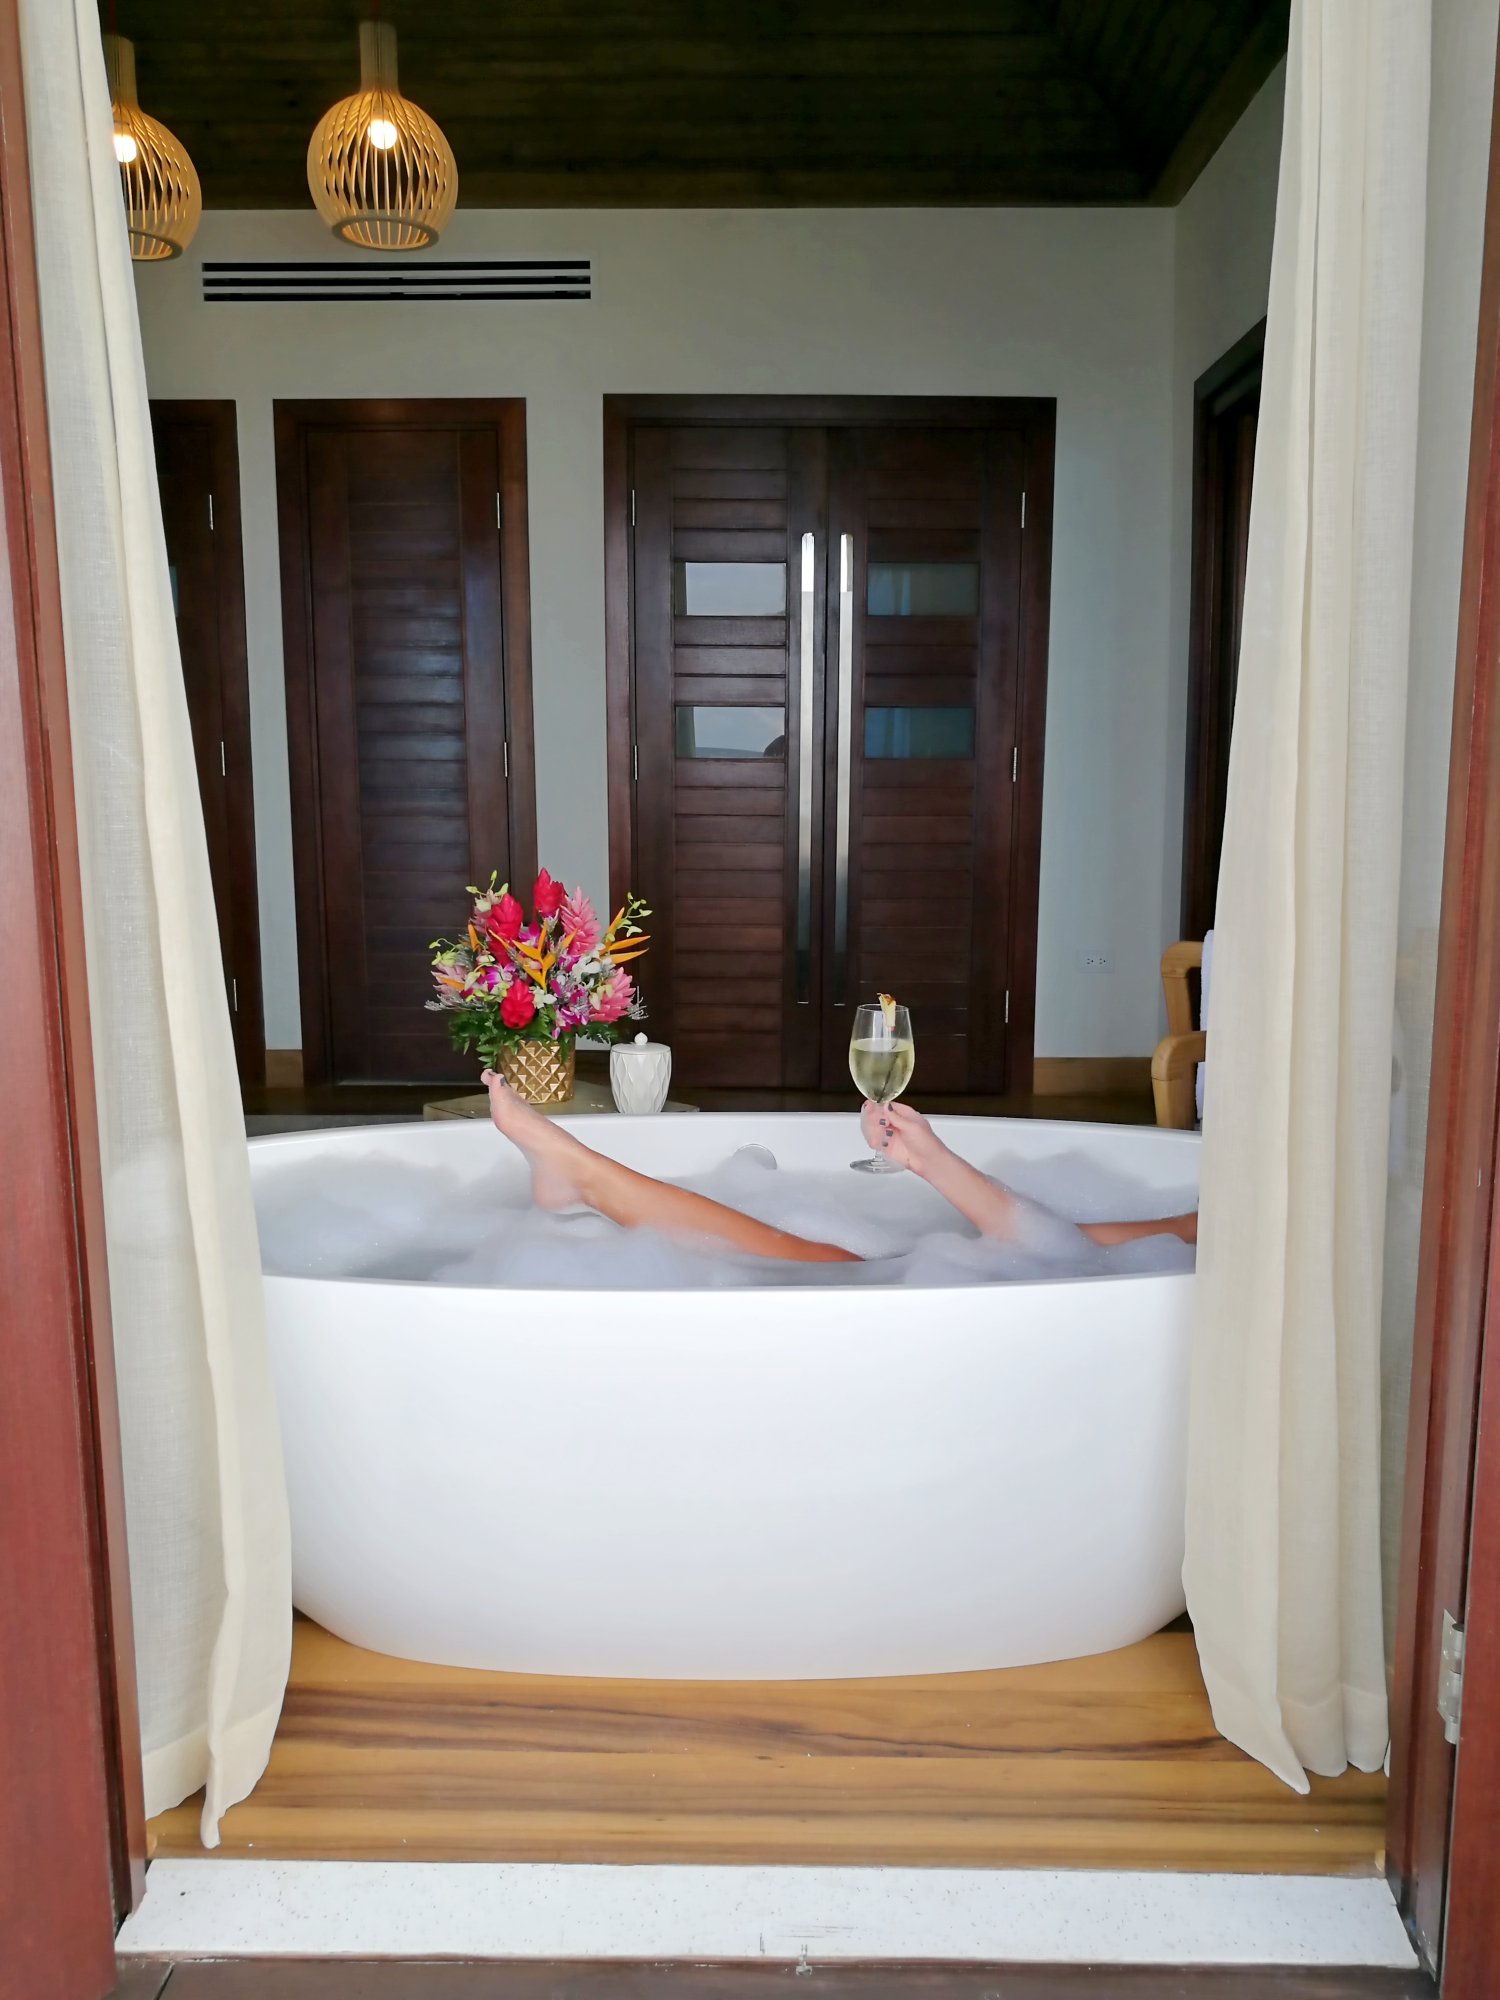 Sandals Royal Caribbean Hotel + Over The Water Villa Review ... 18 Luxusvilla Designs Atemberaubend Aussehen